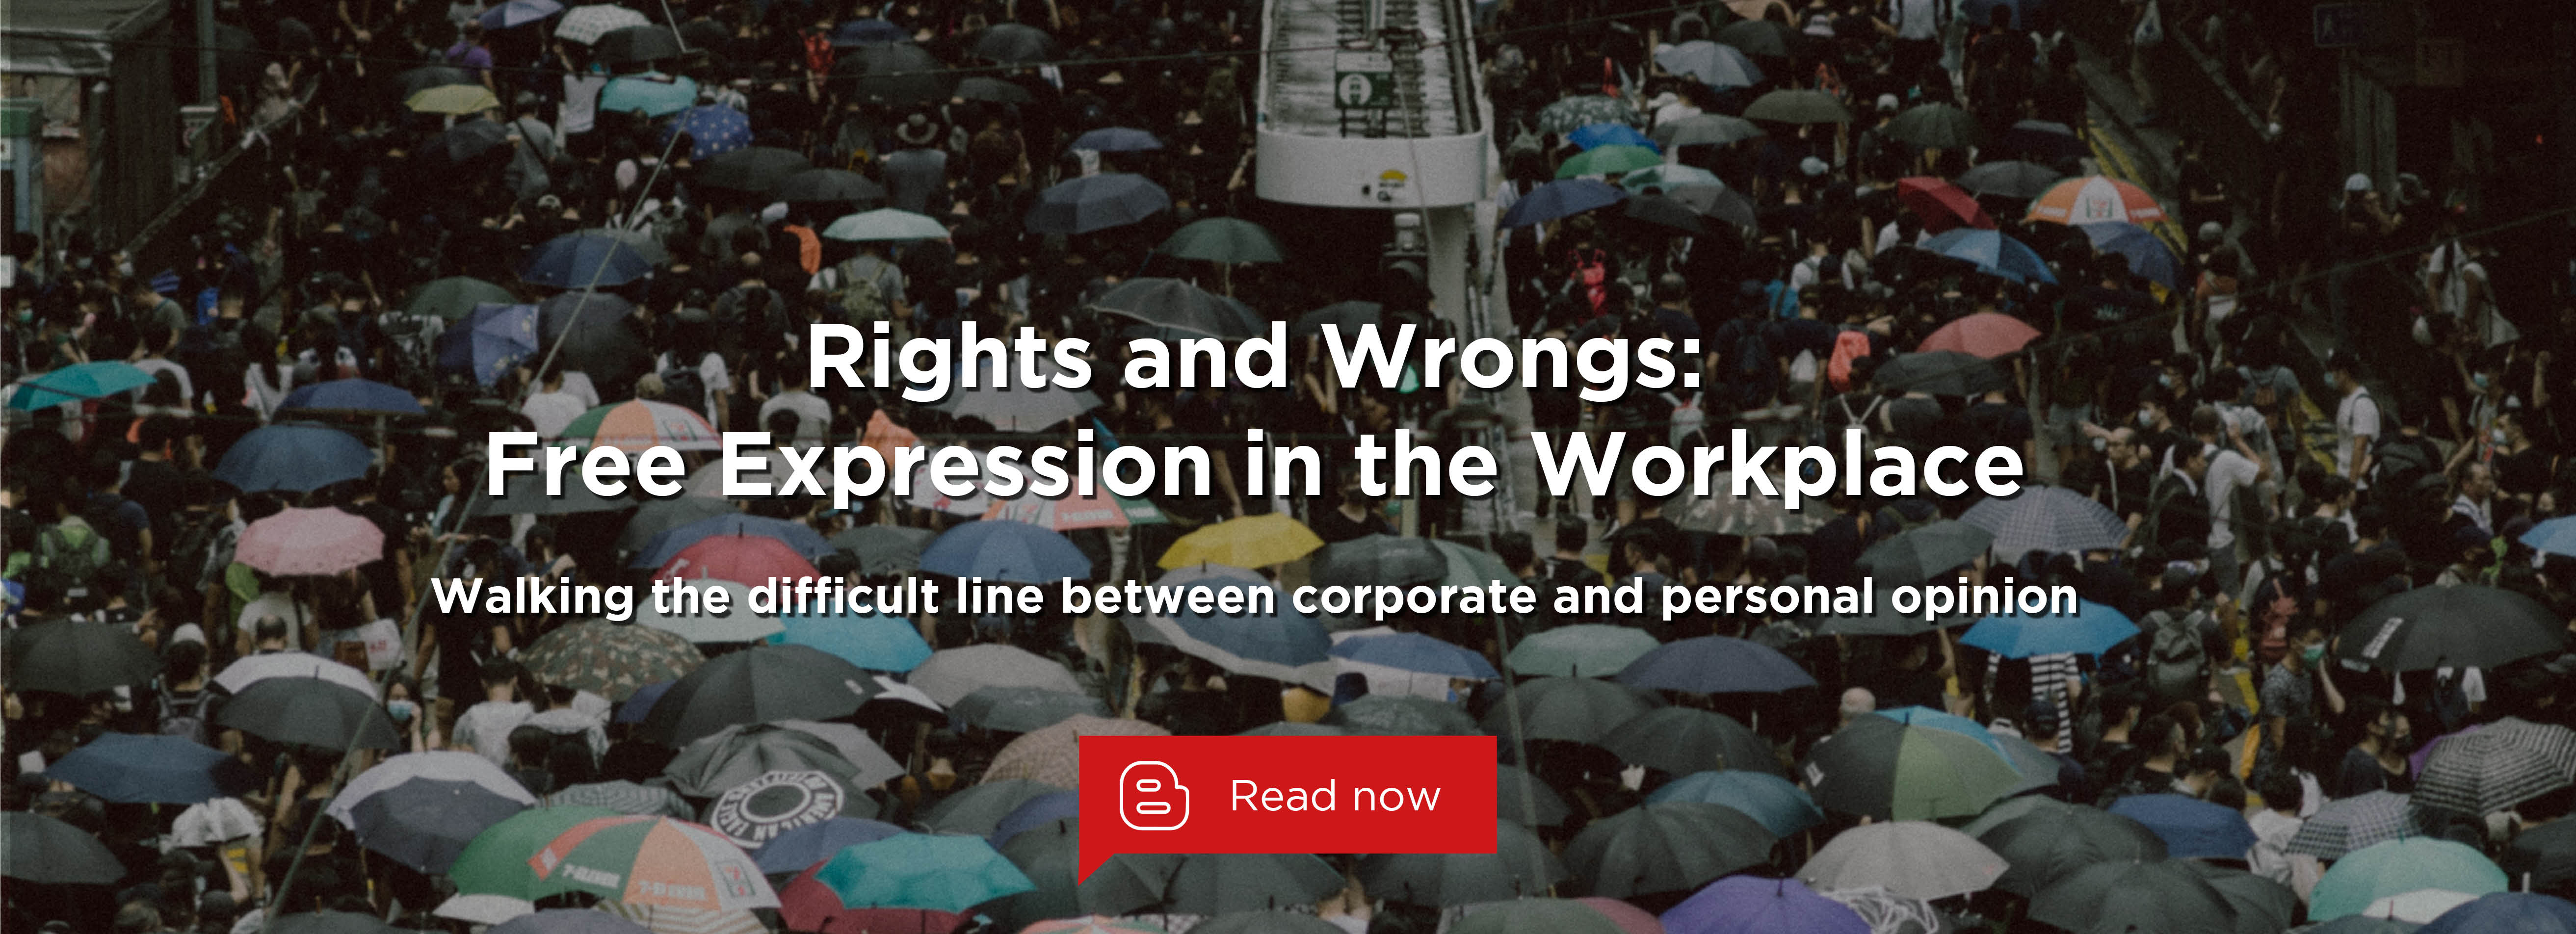 Rights and Wrongs - Free Expression in the Workplace